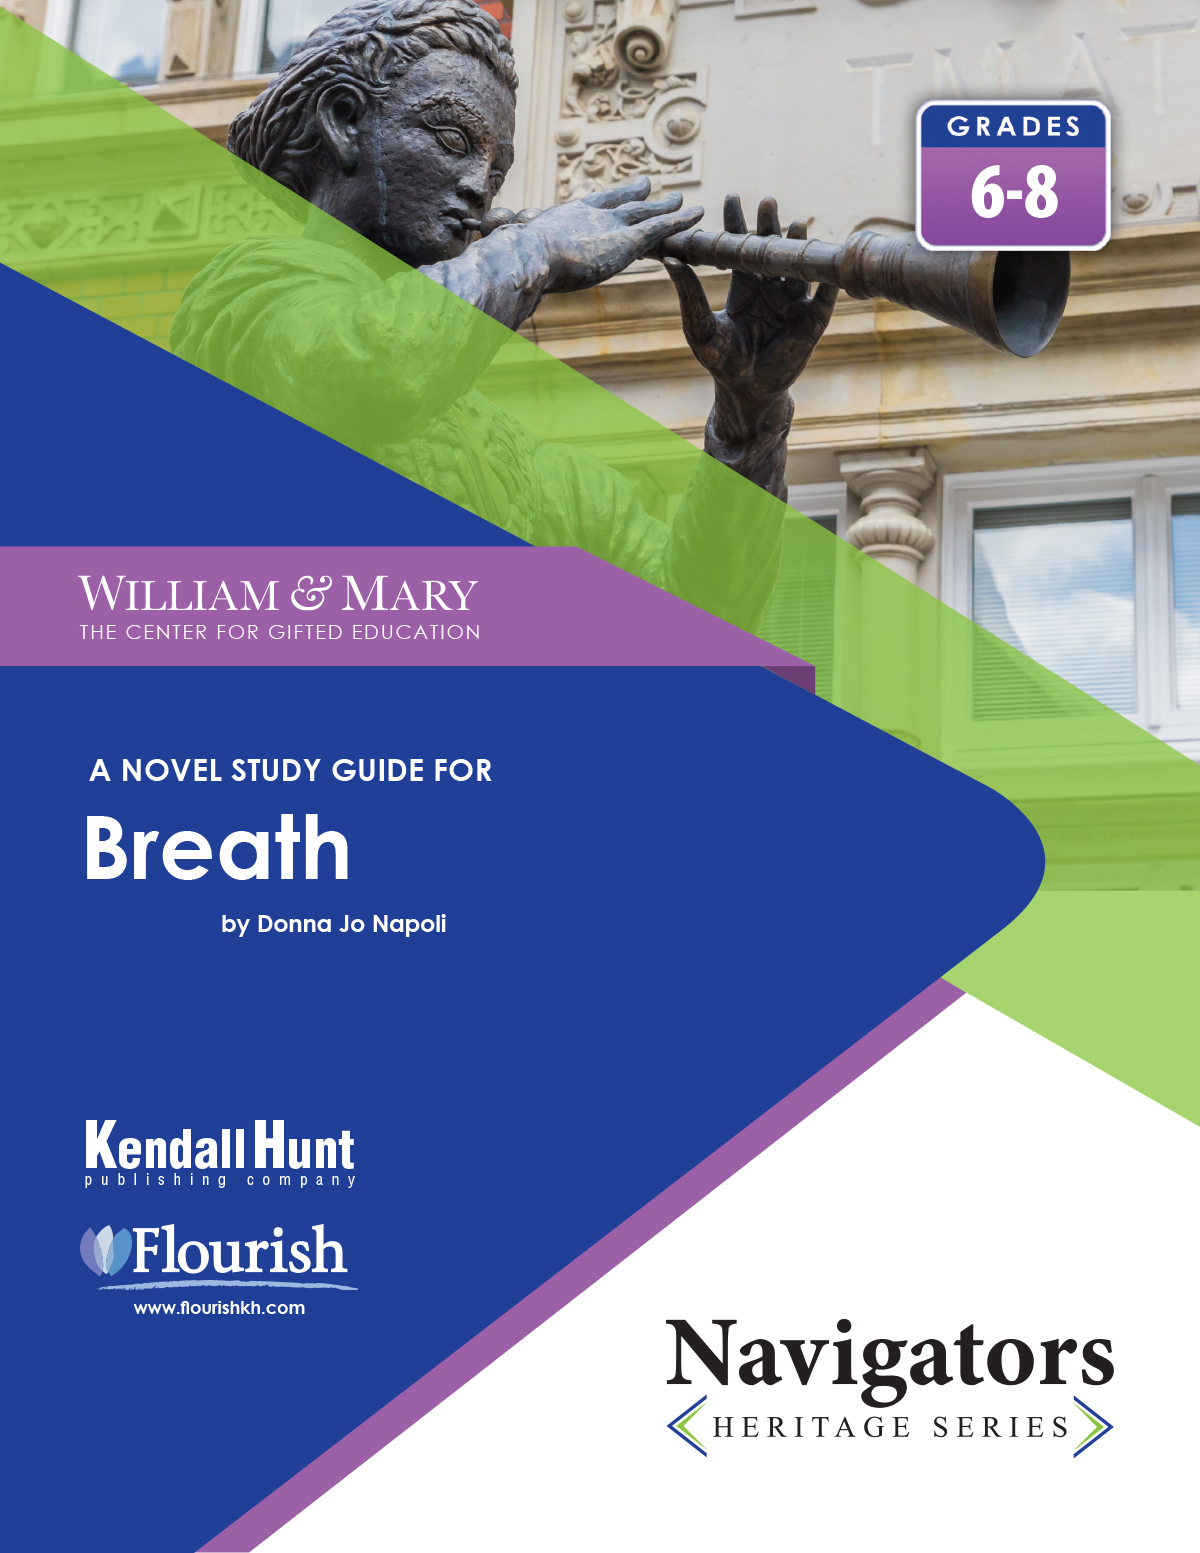 William & Mary Navigator Breath